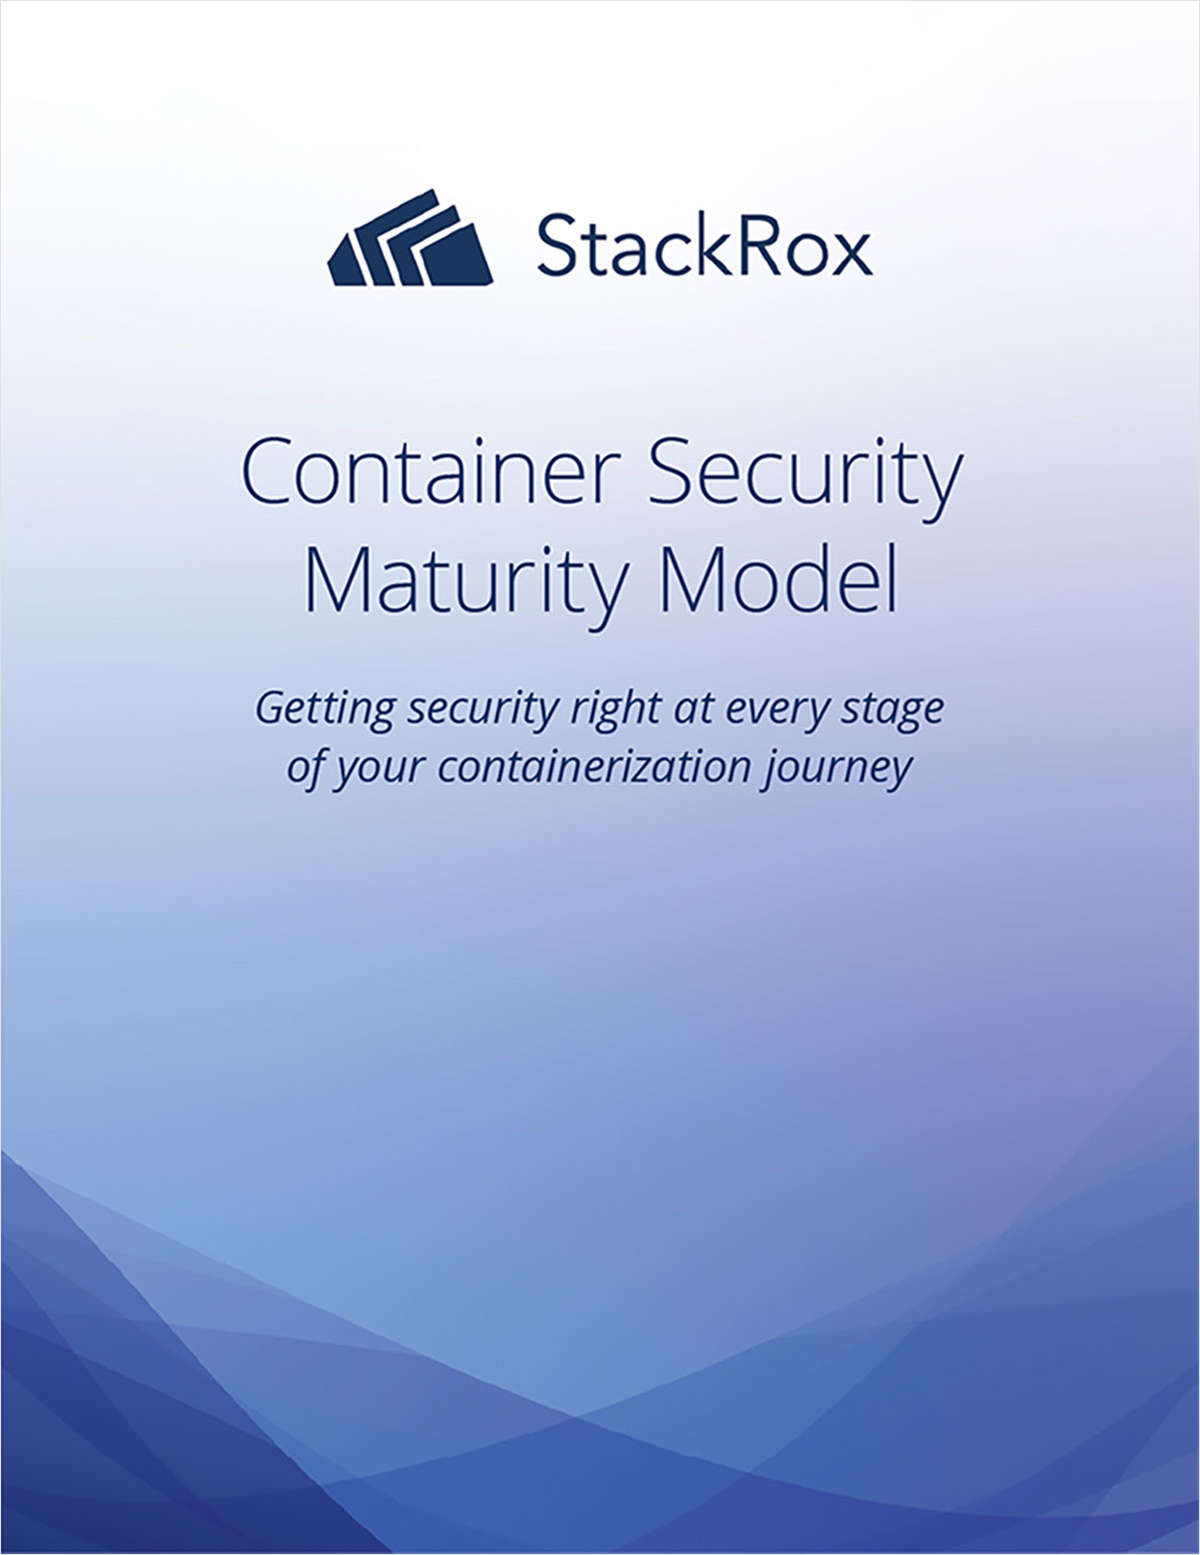 Container Security Maturity Model